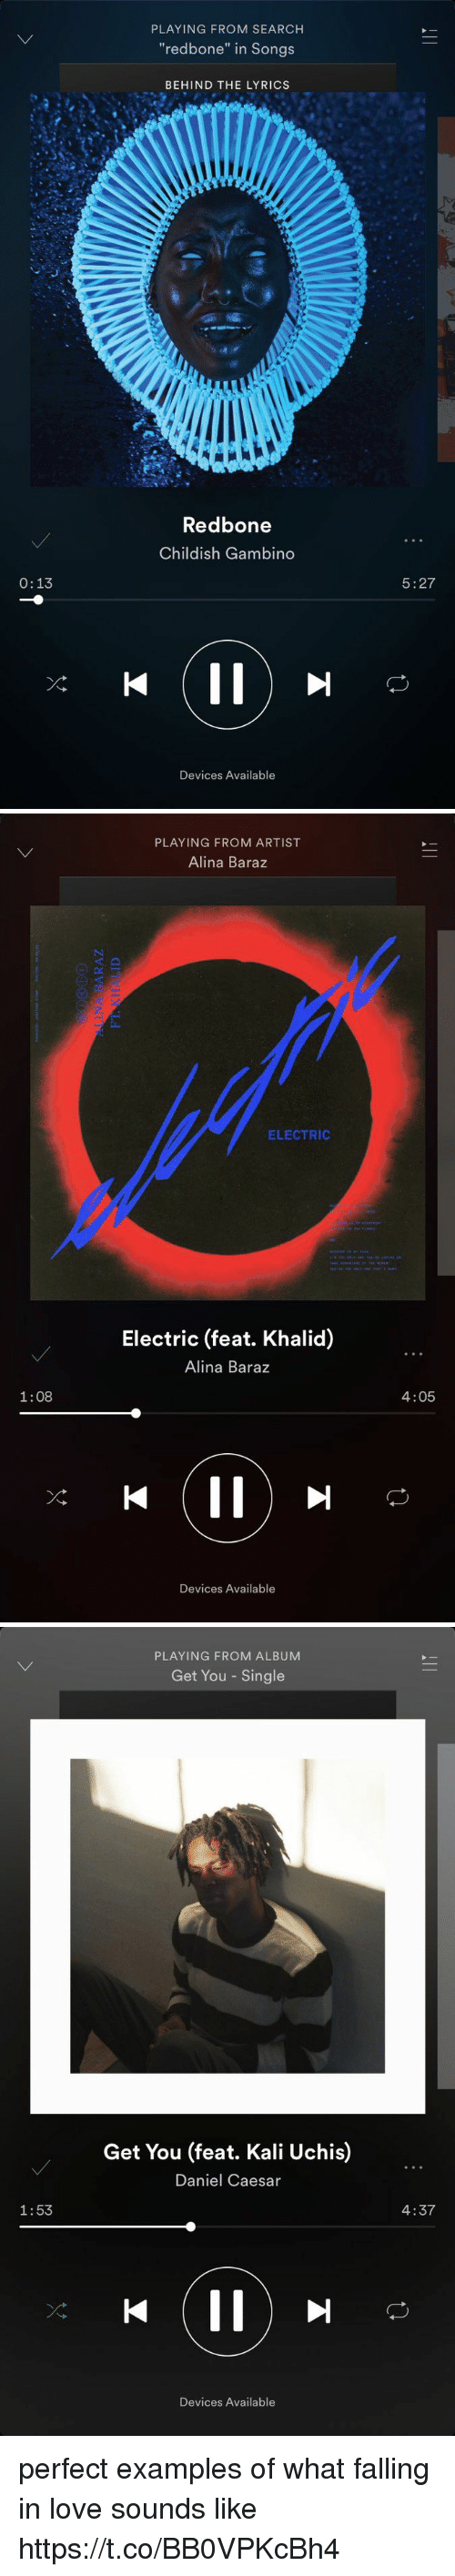 """Childish Gambino, Funny, and Love: 0:13  PLAYING FROM SEARCH  """"redbone"""" in Songs  BEHIND THE LYRICS  Redbone  Childish Gambino  Devices Available  5:27   1:08  PLAYING FROM ARTIST  Alina Baraz  ELECTRIC  Electric (feat. Khalid)  Alina Baraz  Devices Available  4:05   1:53  PLAYING FROM ALBUM  Get You Single  Get You (feat. Kali Uchis)  Daniel Caesar  Devices Available  4:37 perfect examples of what falling in love sounds like https://t.co/BB0VPKcBh4"""